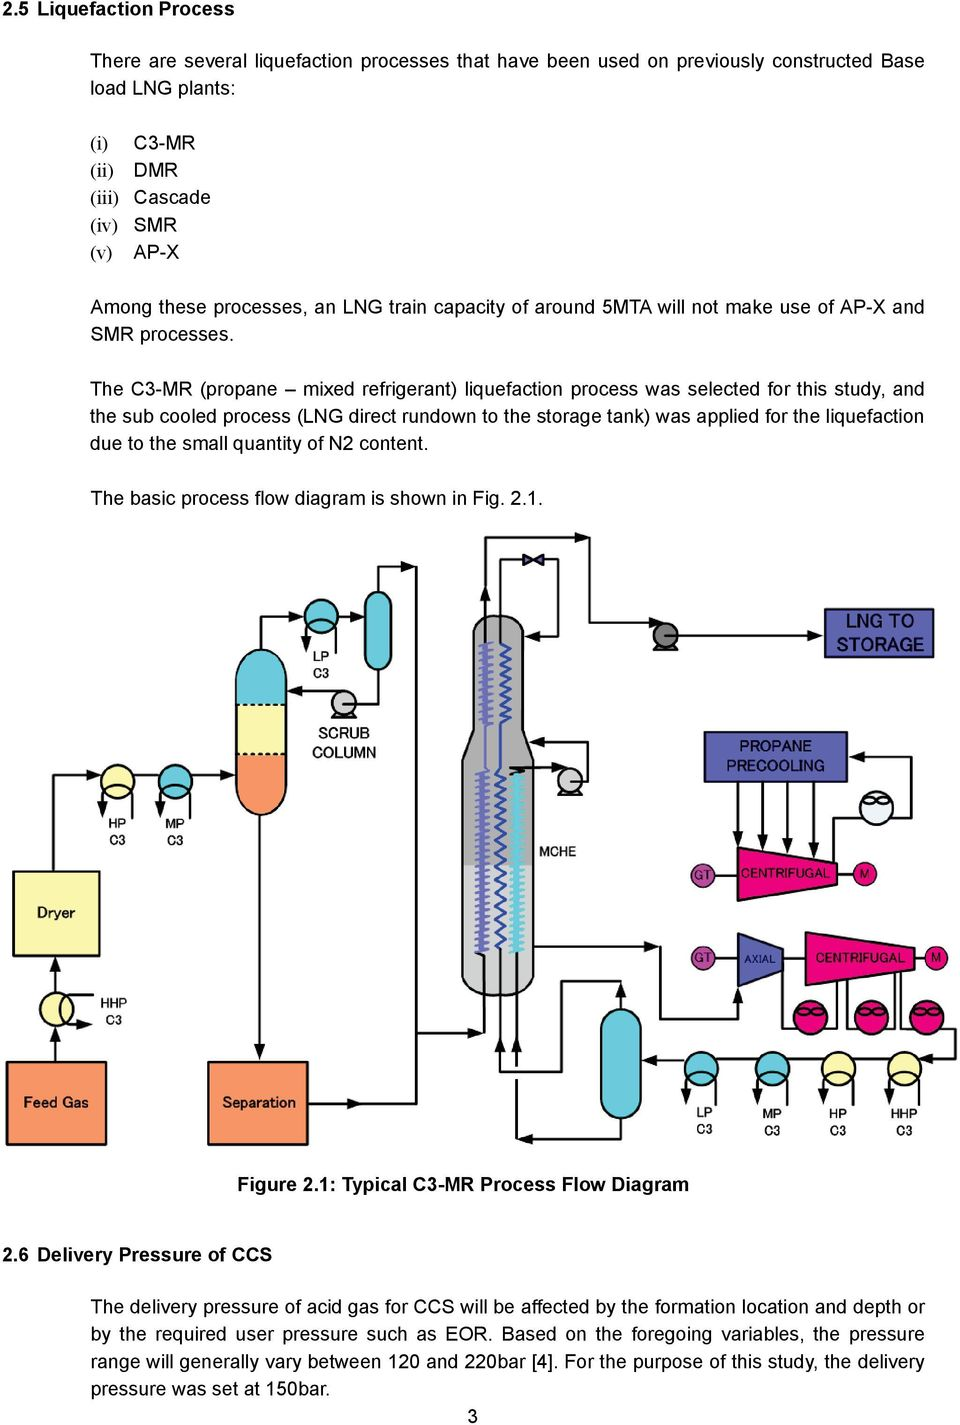 Minimizing The Co2 Emission From Liquefaction Plant Pdf Process Flow Diagram Lng C3 Mr Propane Mixed Refrigerant Was Selected For This Study